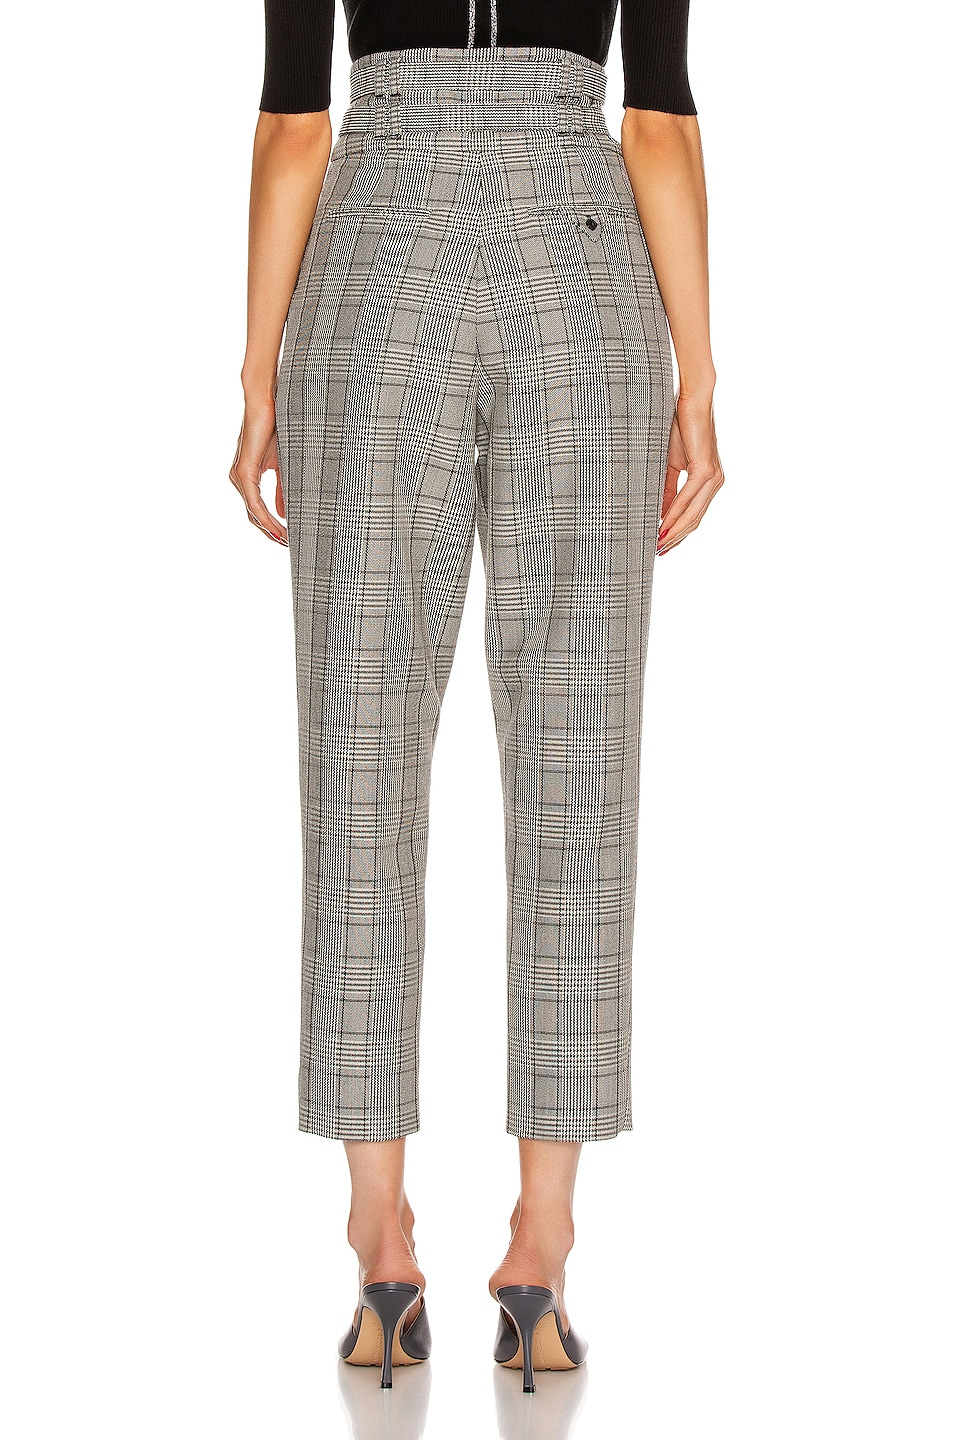 Image 3 of Proenza Schouler Belted Pant in Black & Off White Glen Plaid